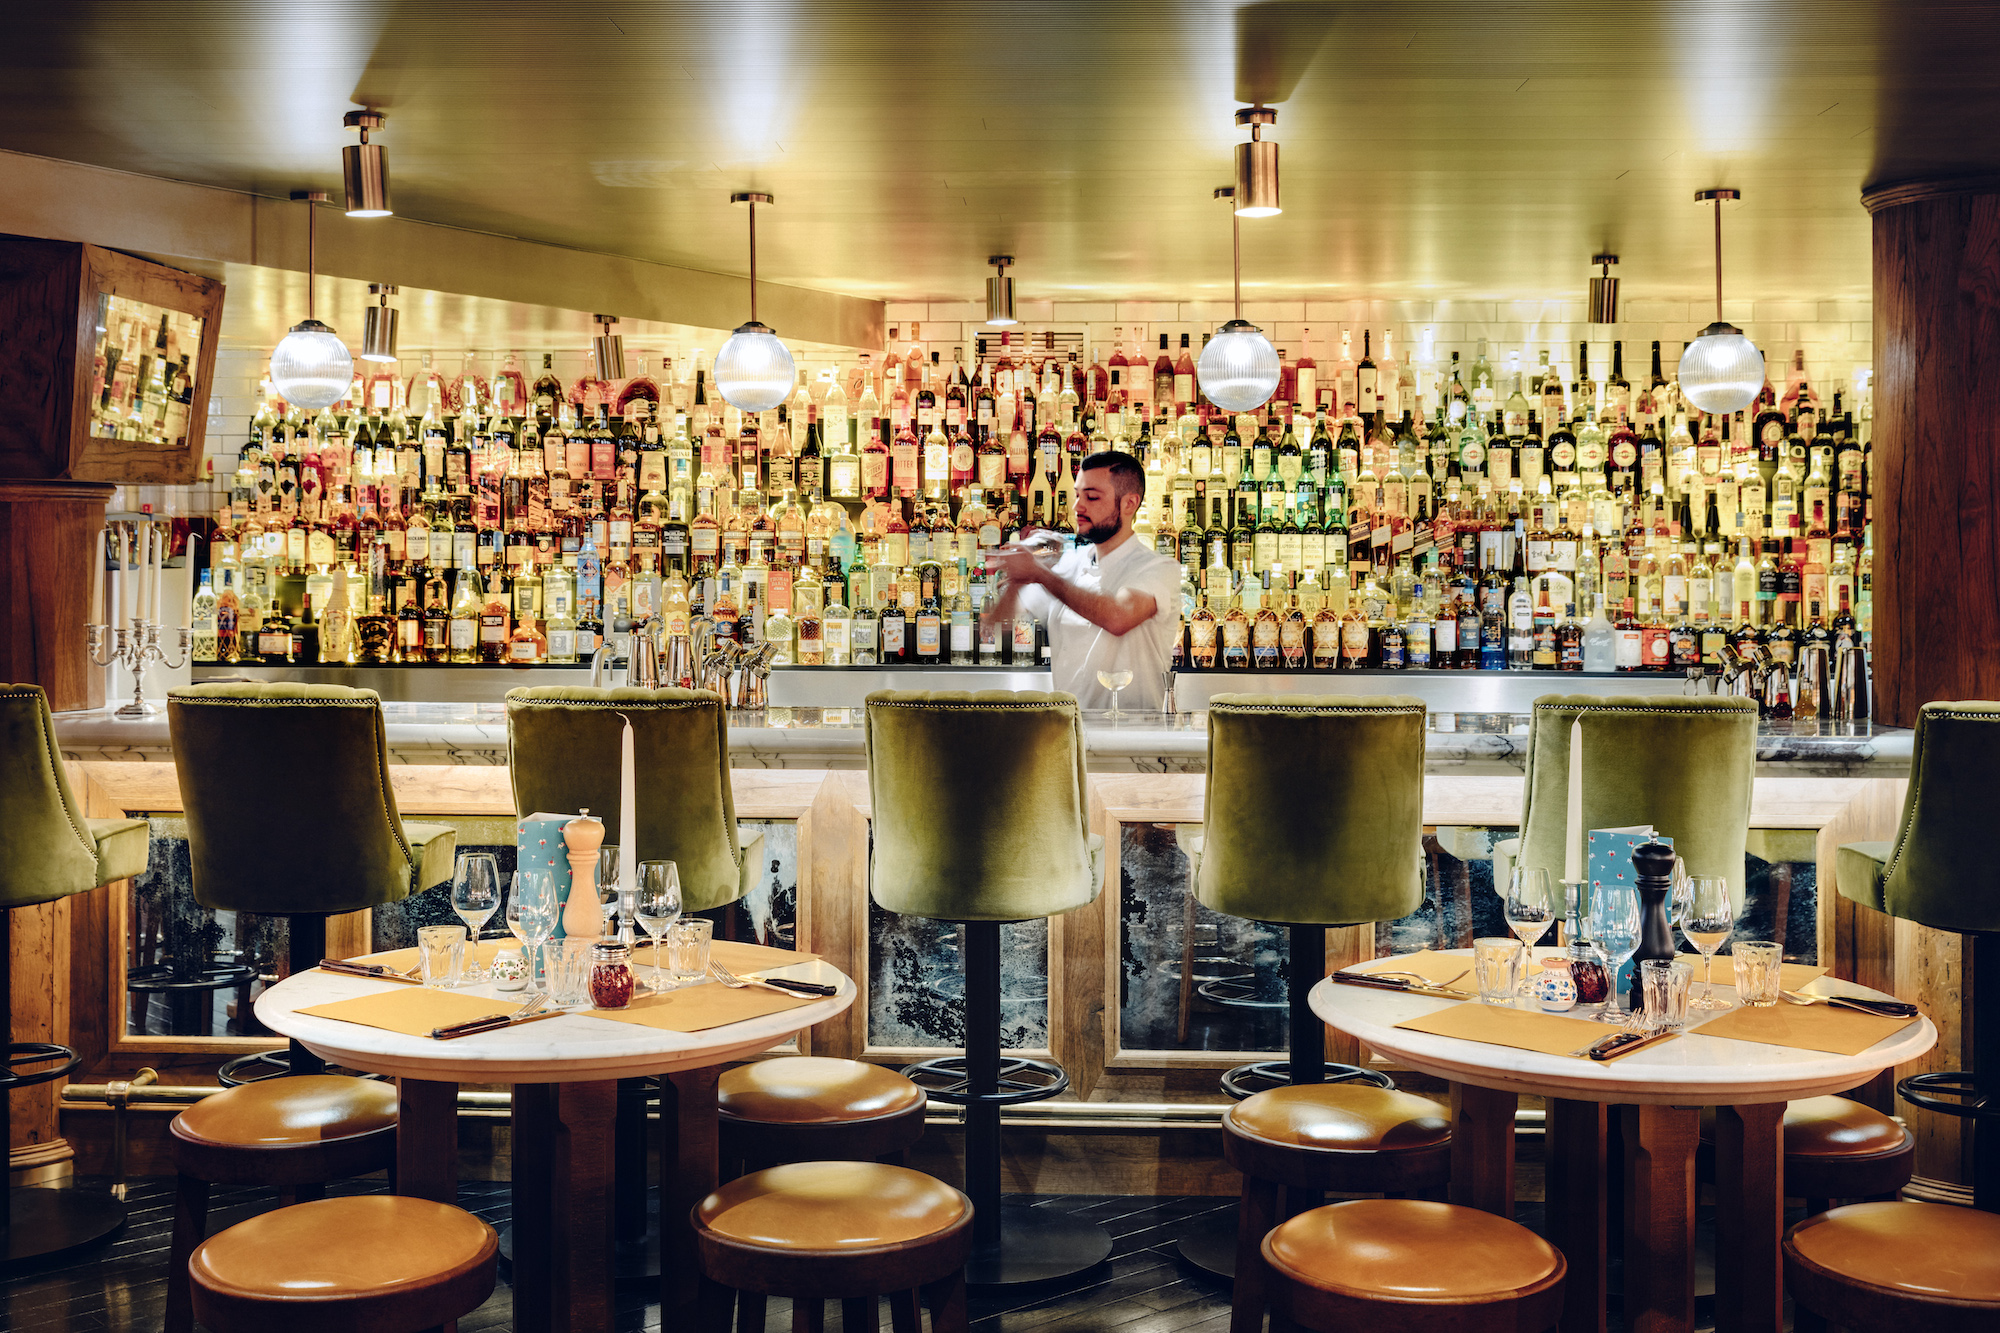 The Big Mamma Group offers Trendy, Fresh, Authentic Italian Dining in Paris, as well as cocktails like at this location's bar with an array of spirits where a mixologist is shaking a cocktail.